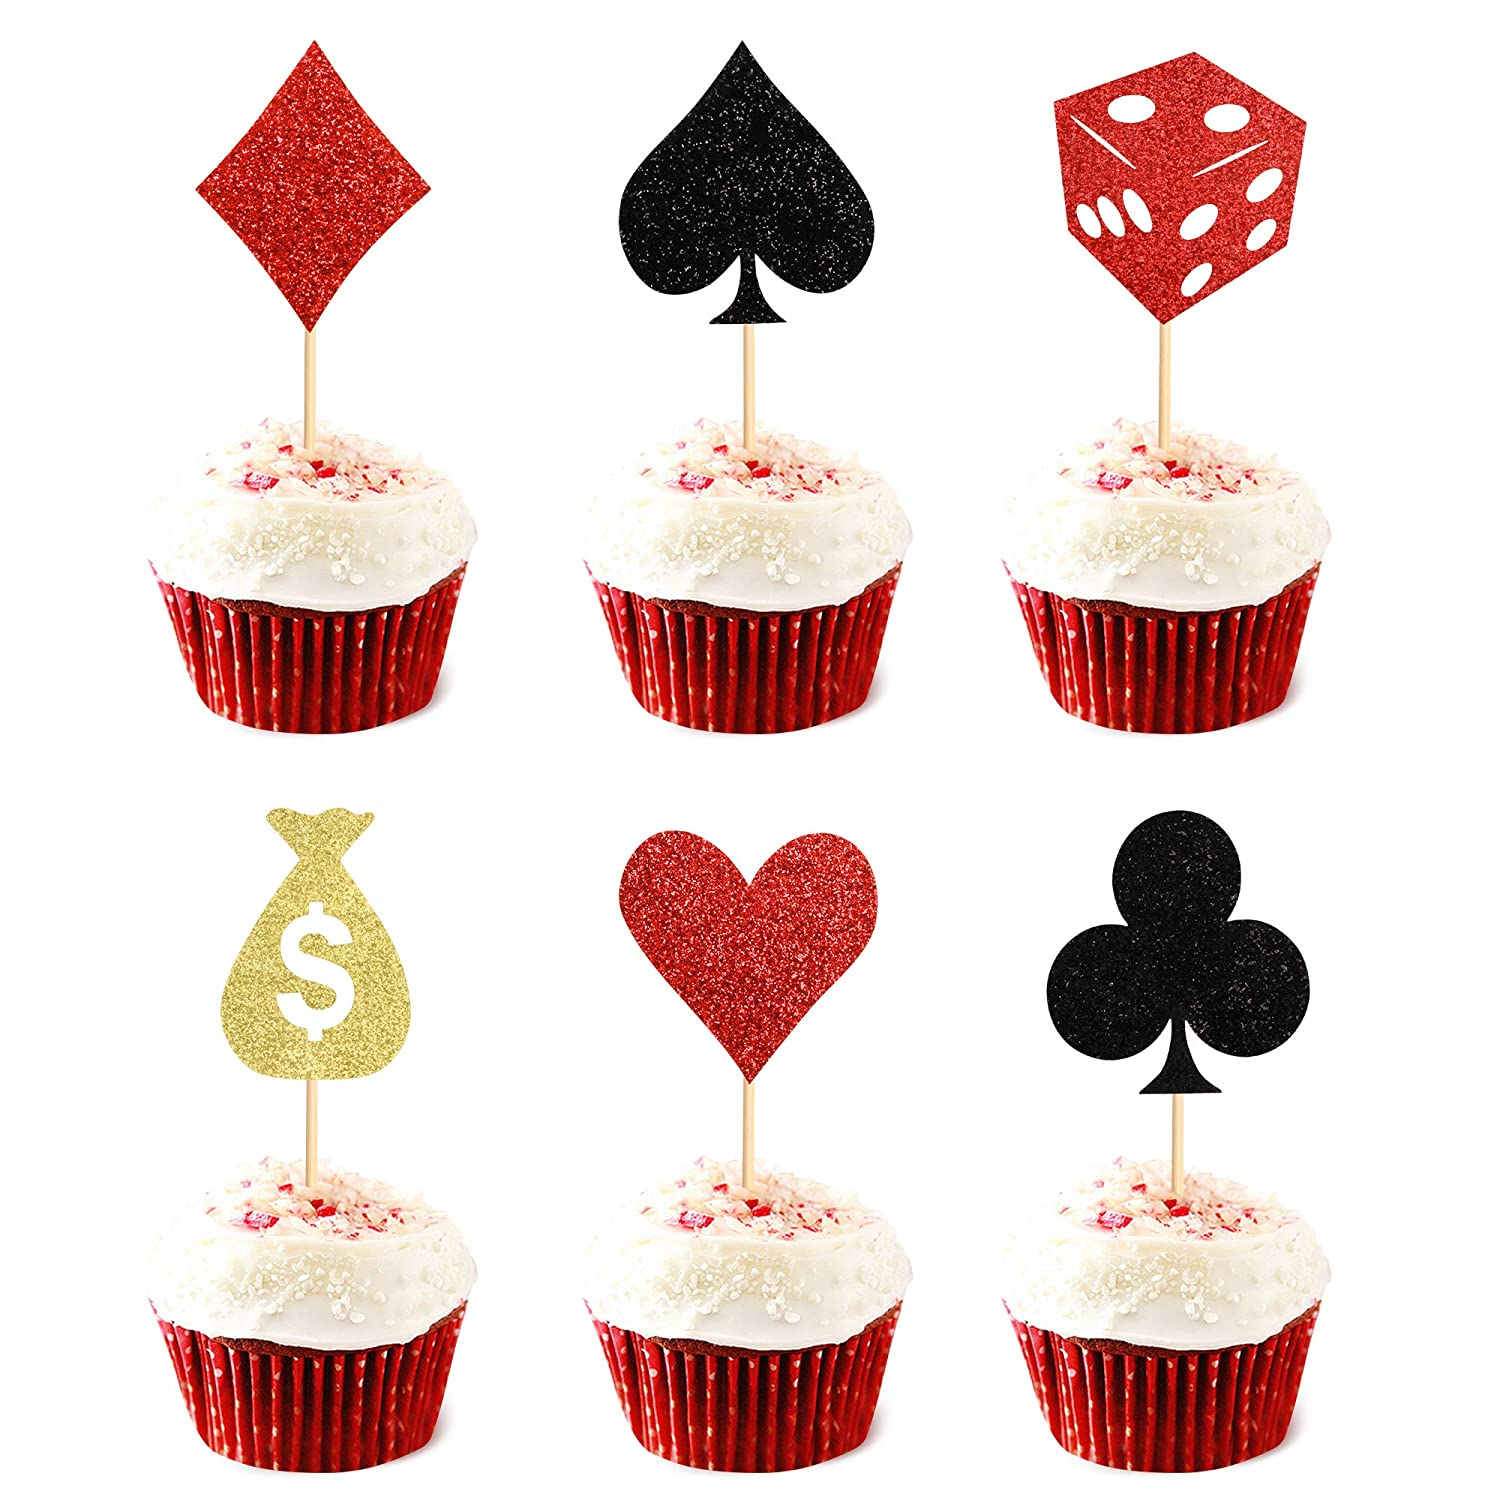 60 pack Poker Heart Cupcake Toppers Casino Playing Cards Vegas Theme Cupcake Toppers Decorations Poker Night Party Supplies